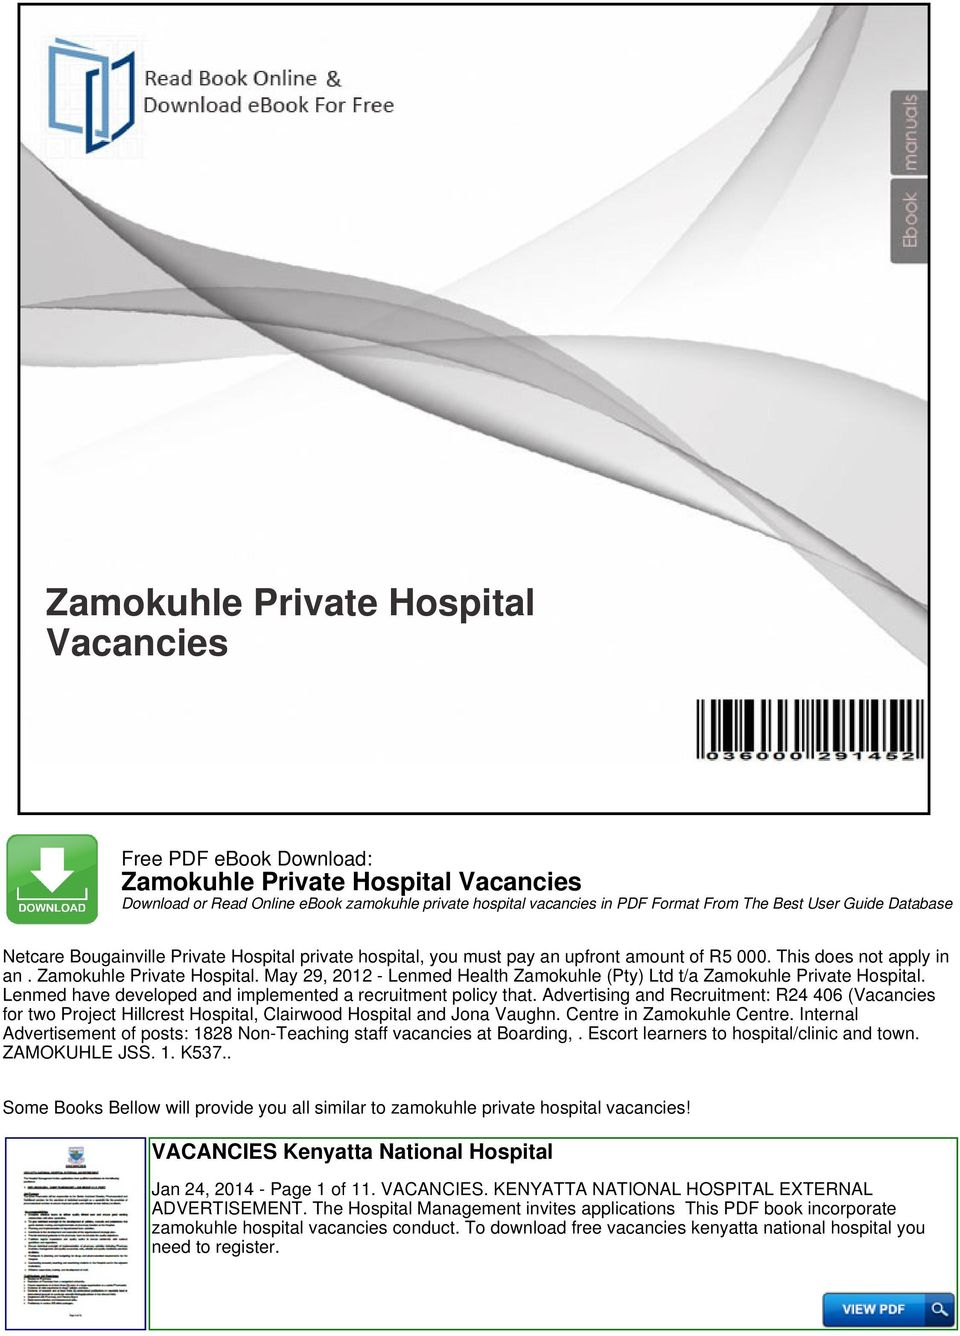 Zamokuhle private hospital vacancies pdf lenmed have developed and implemented a recruitment policy that advertising and recruitment r24 406 fandeluxe Gallery